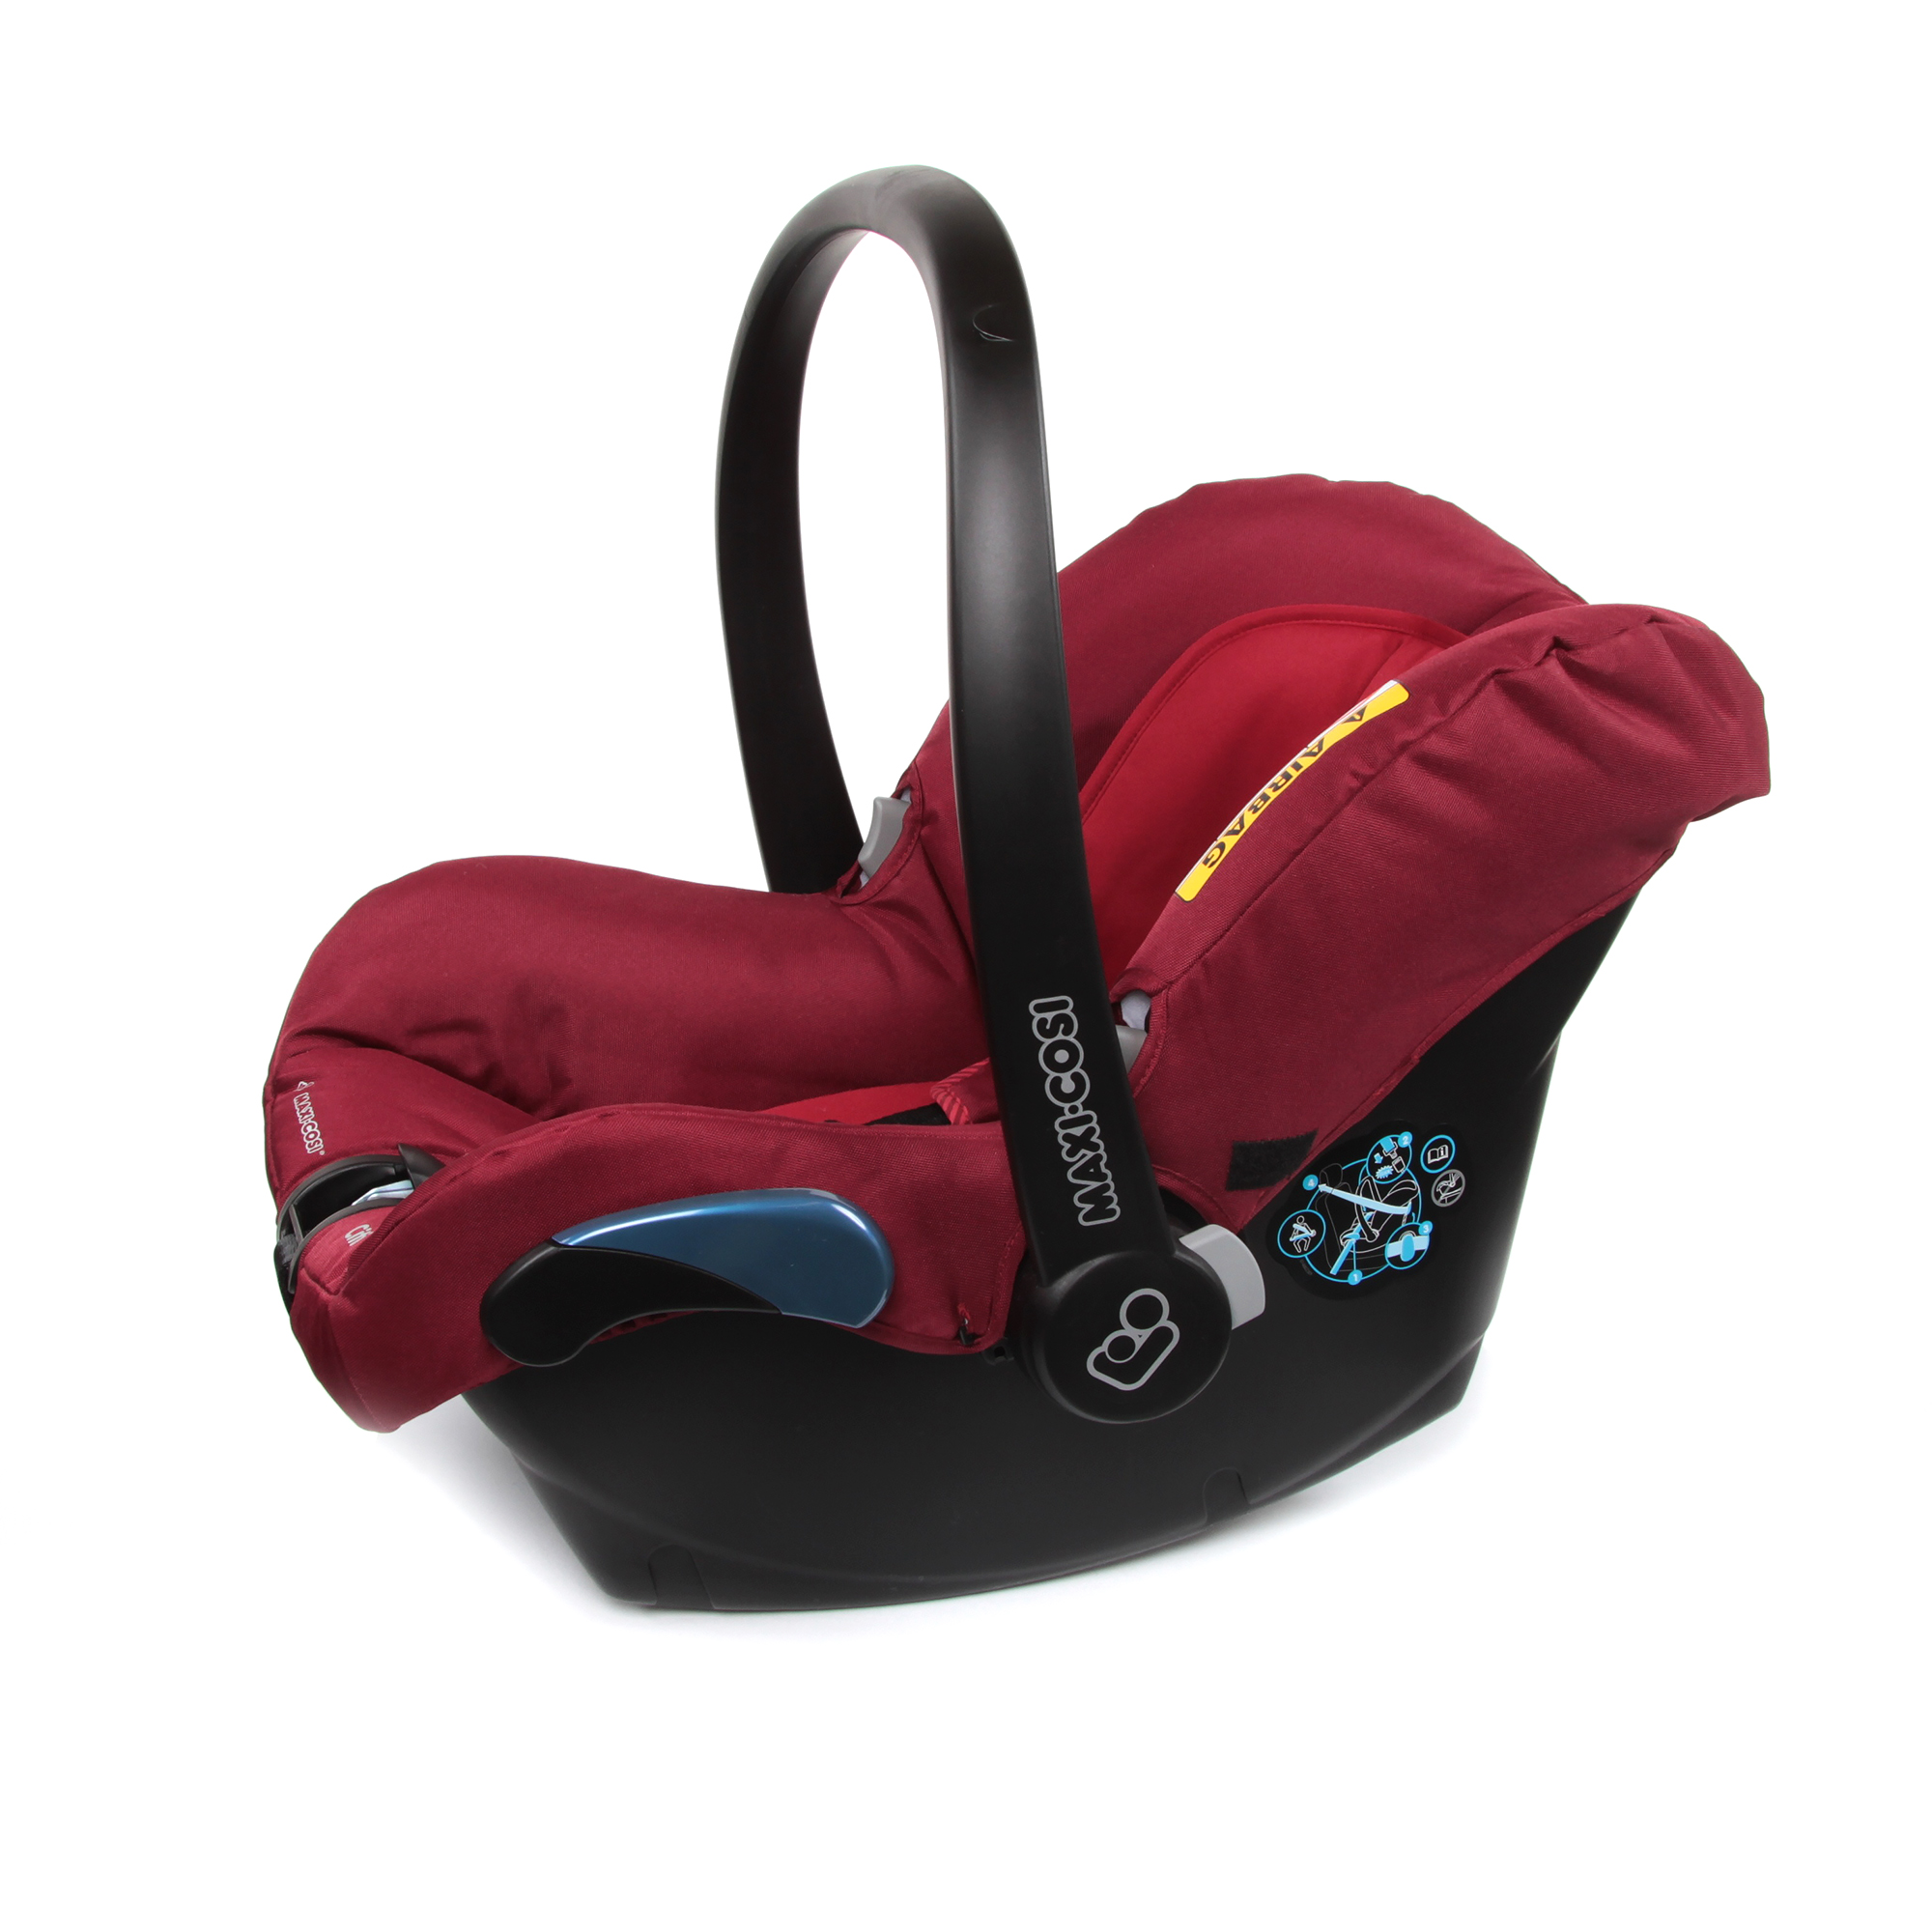 maxi cosi infant car seat citi 2018 robin red buy at kidsroom car seats. Black Bedroom Furniture Sets. Home Design Ideas